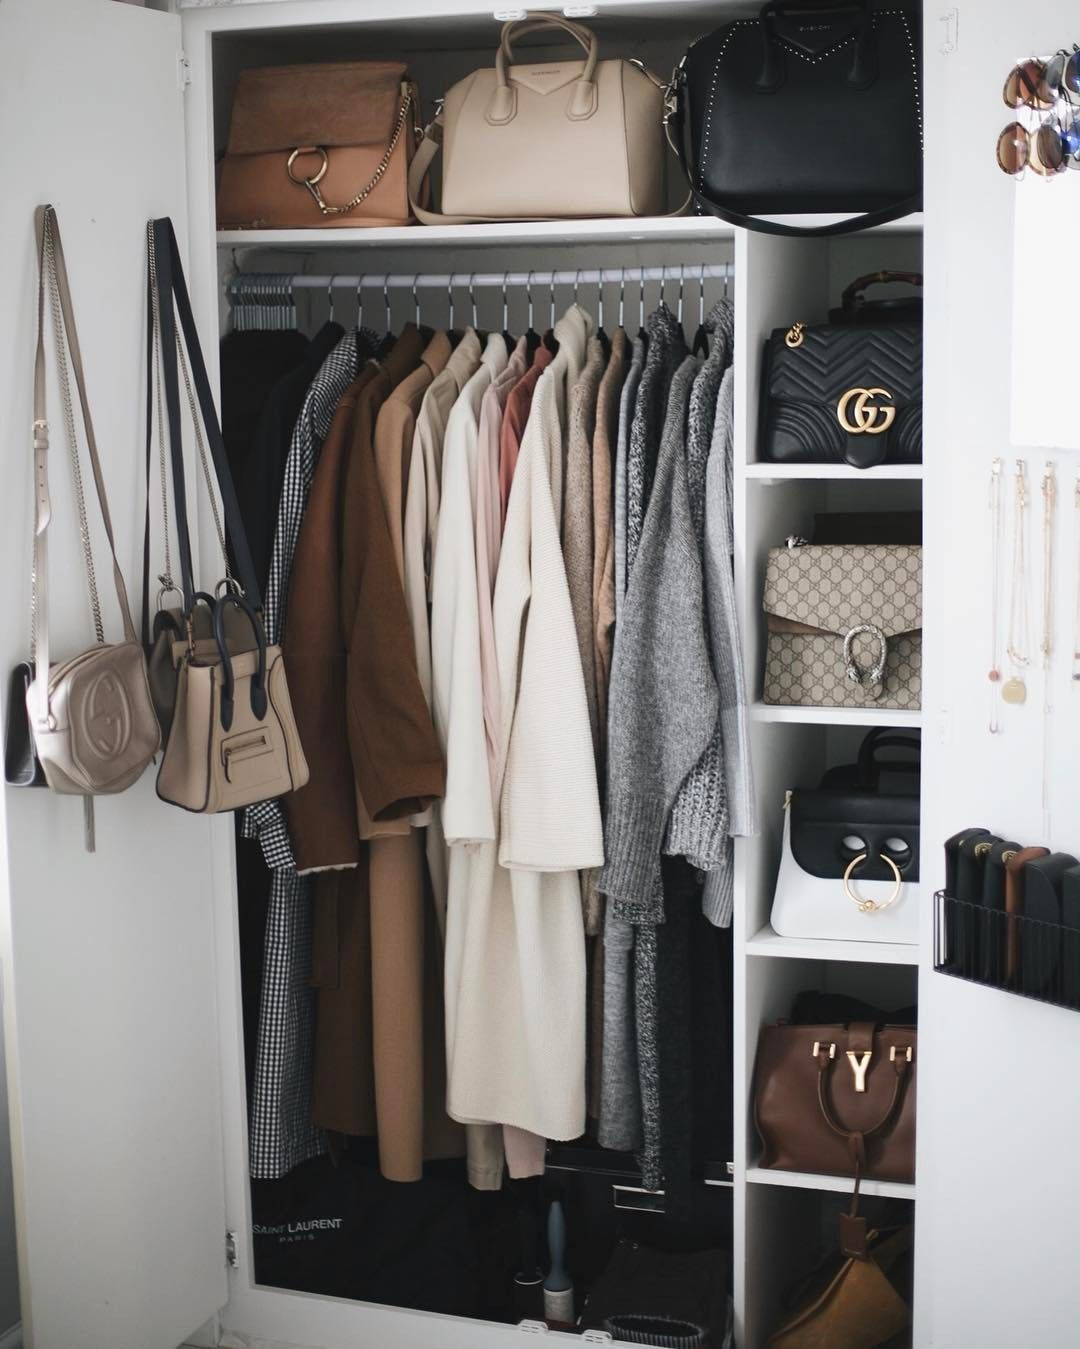 10 4k Likes 197 Comments Emma Hill Ejstyle Emmahill On Instagram New Today On Ejstyle Co Uk It 39 S All Abou Closet Designs Closet Decor Room Closet